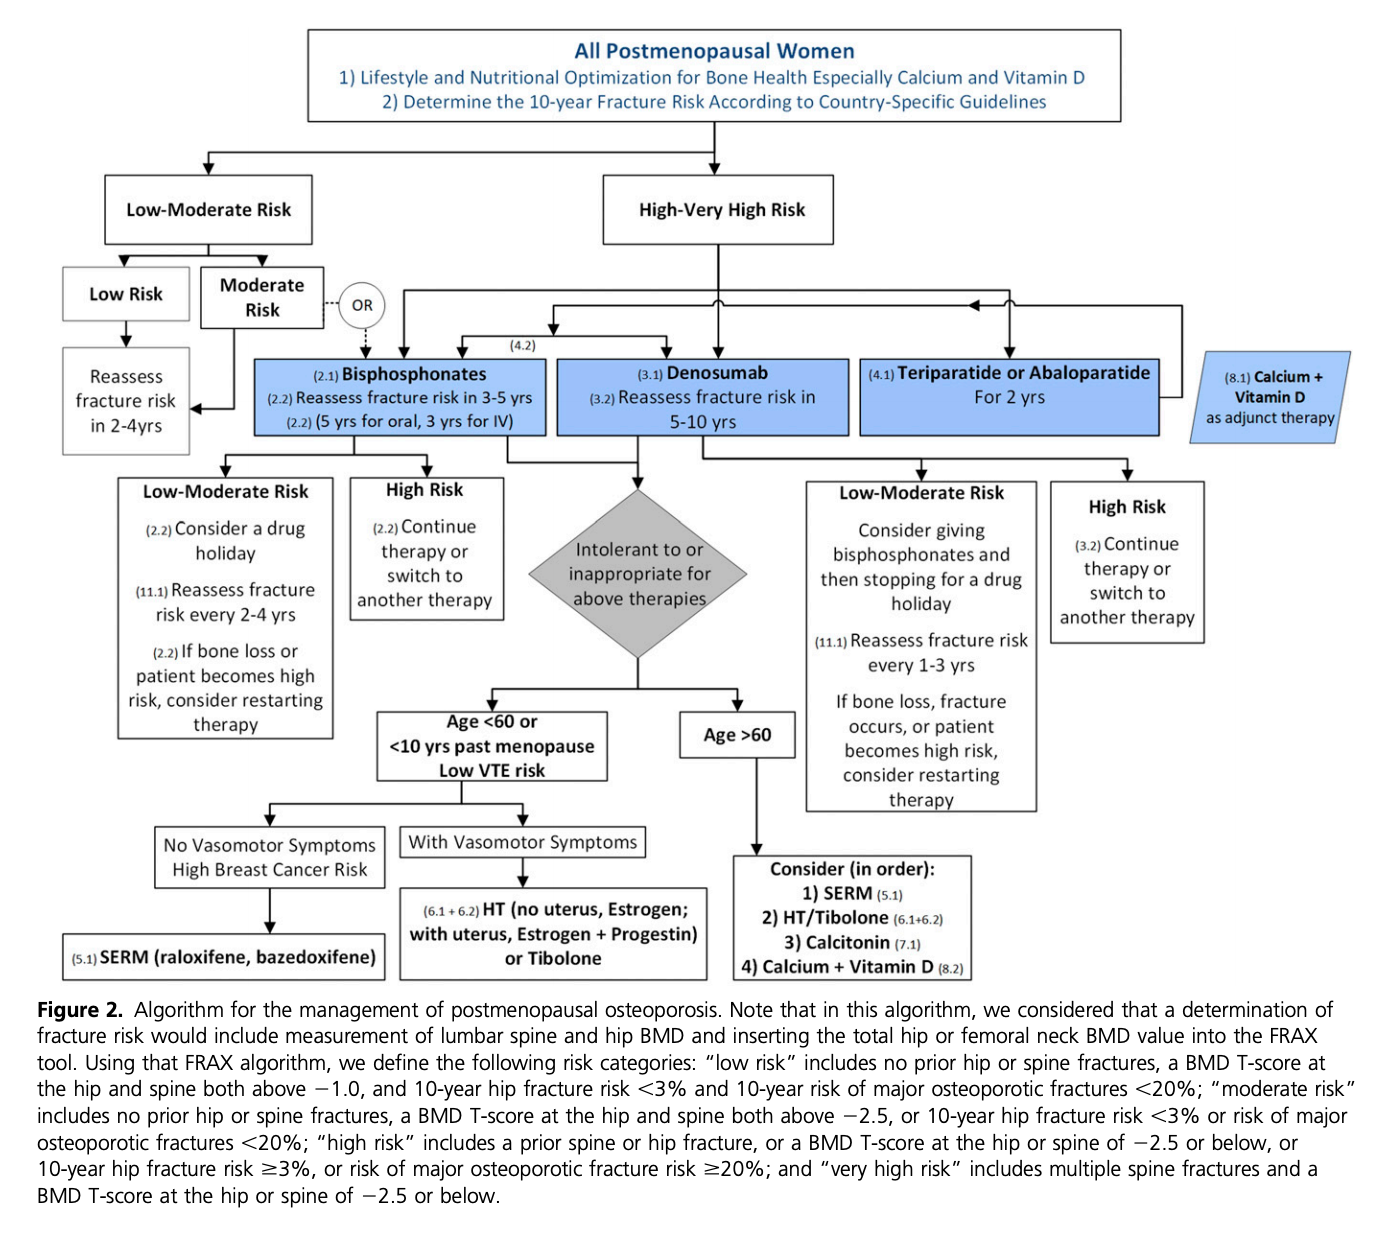 Figure 1 . Algorithm for medical management. Adopted from Eastell et. al (2019) (29)